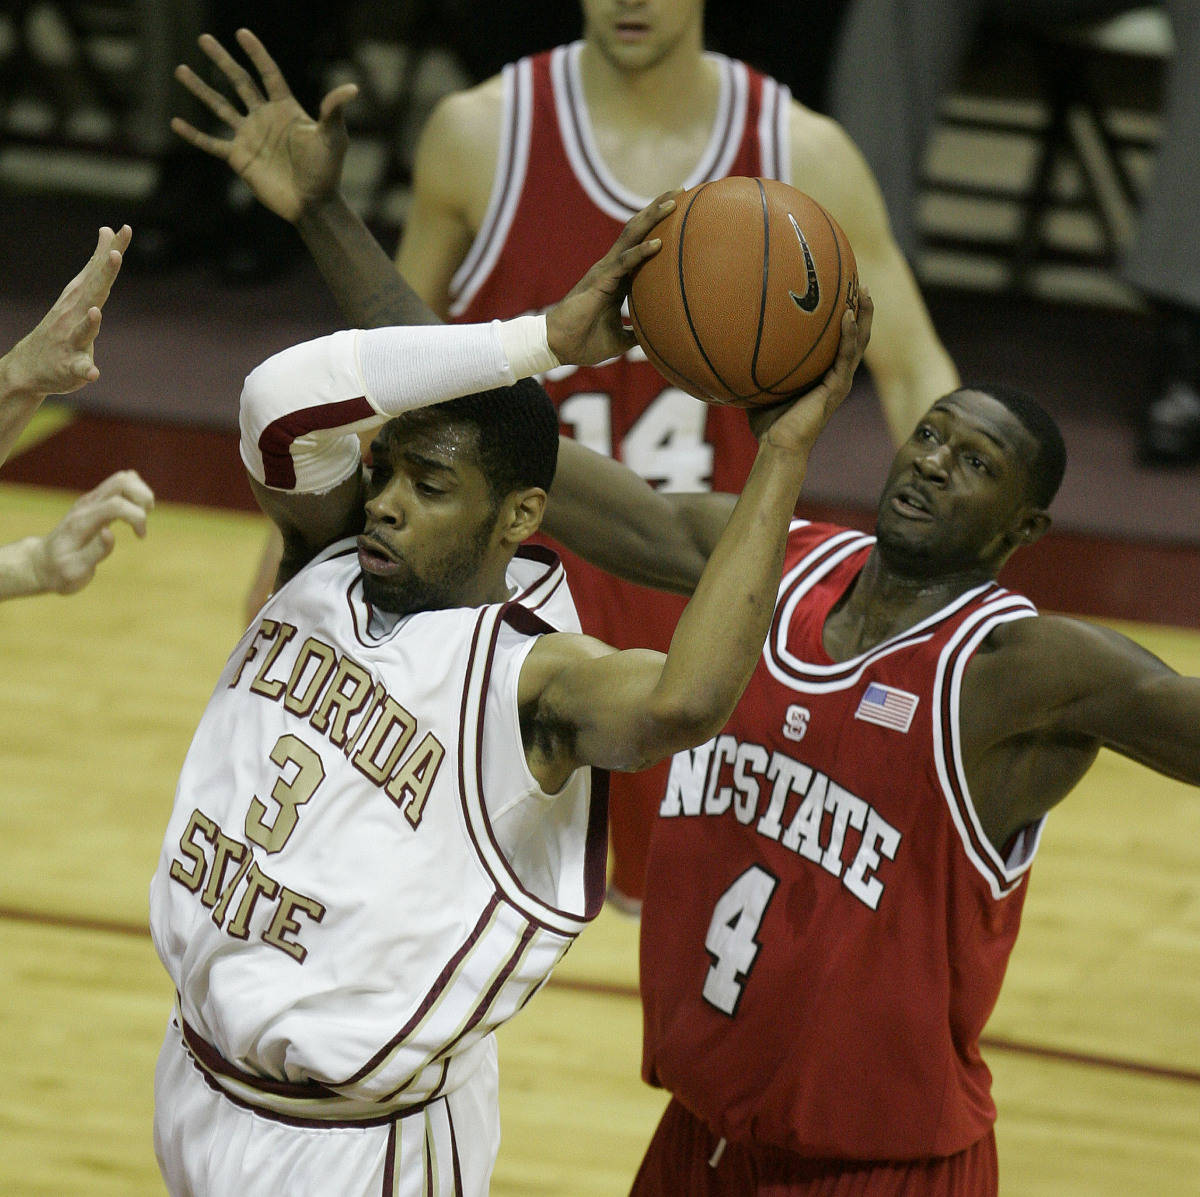 North Carolina State's Courtney Fells (4) attempts to knock the ball away from Florida State's Isaiah Swann (3) during the first half of a college basketball game, Saturday, Feb. 24, 2007, in Tallahassee, Fla.(AP Photo/Phil Coale)